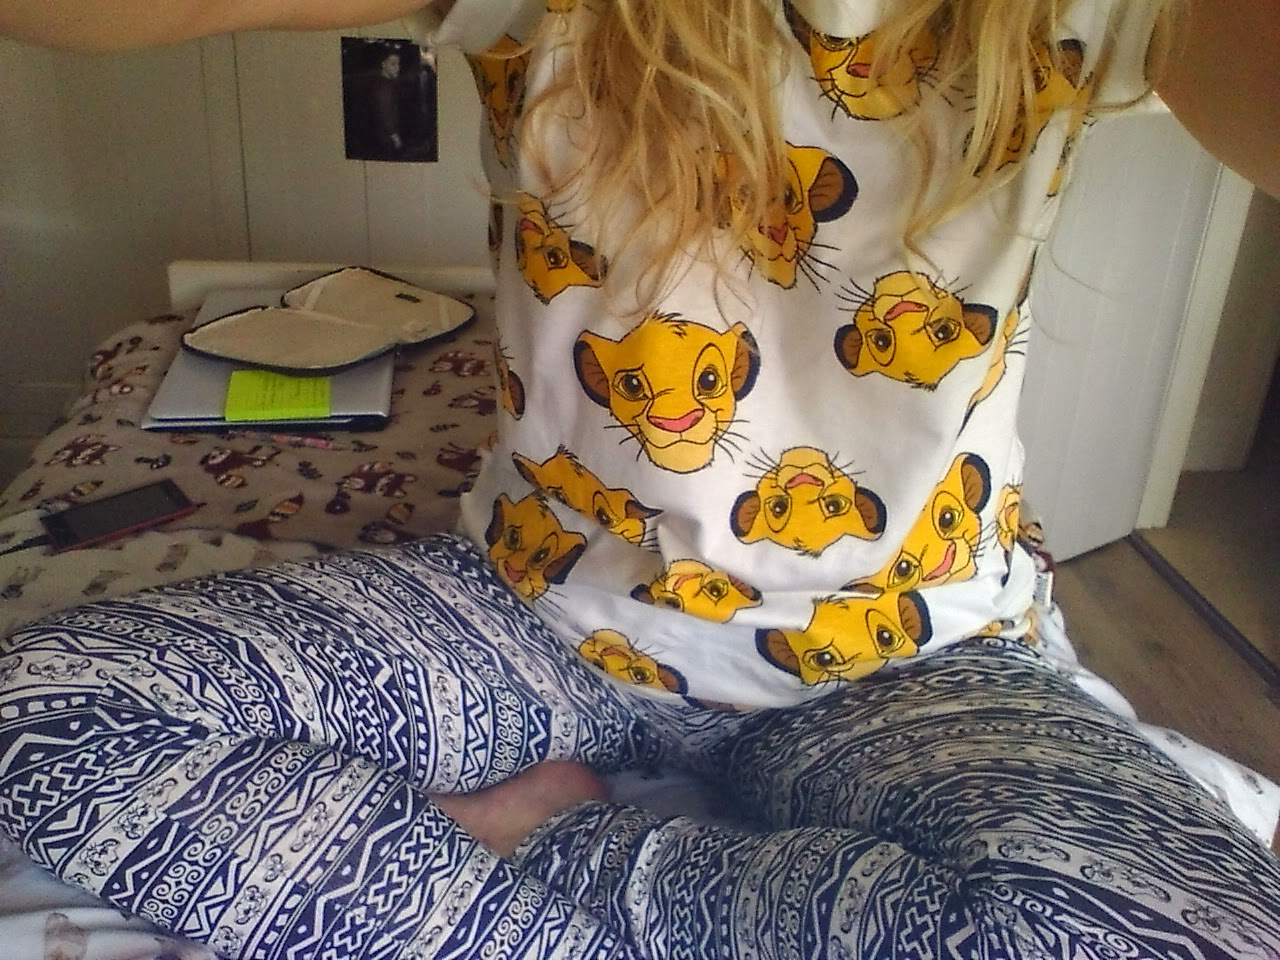 Primark Lion King Pyjamas